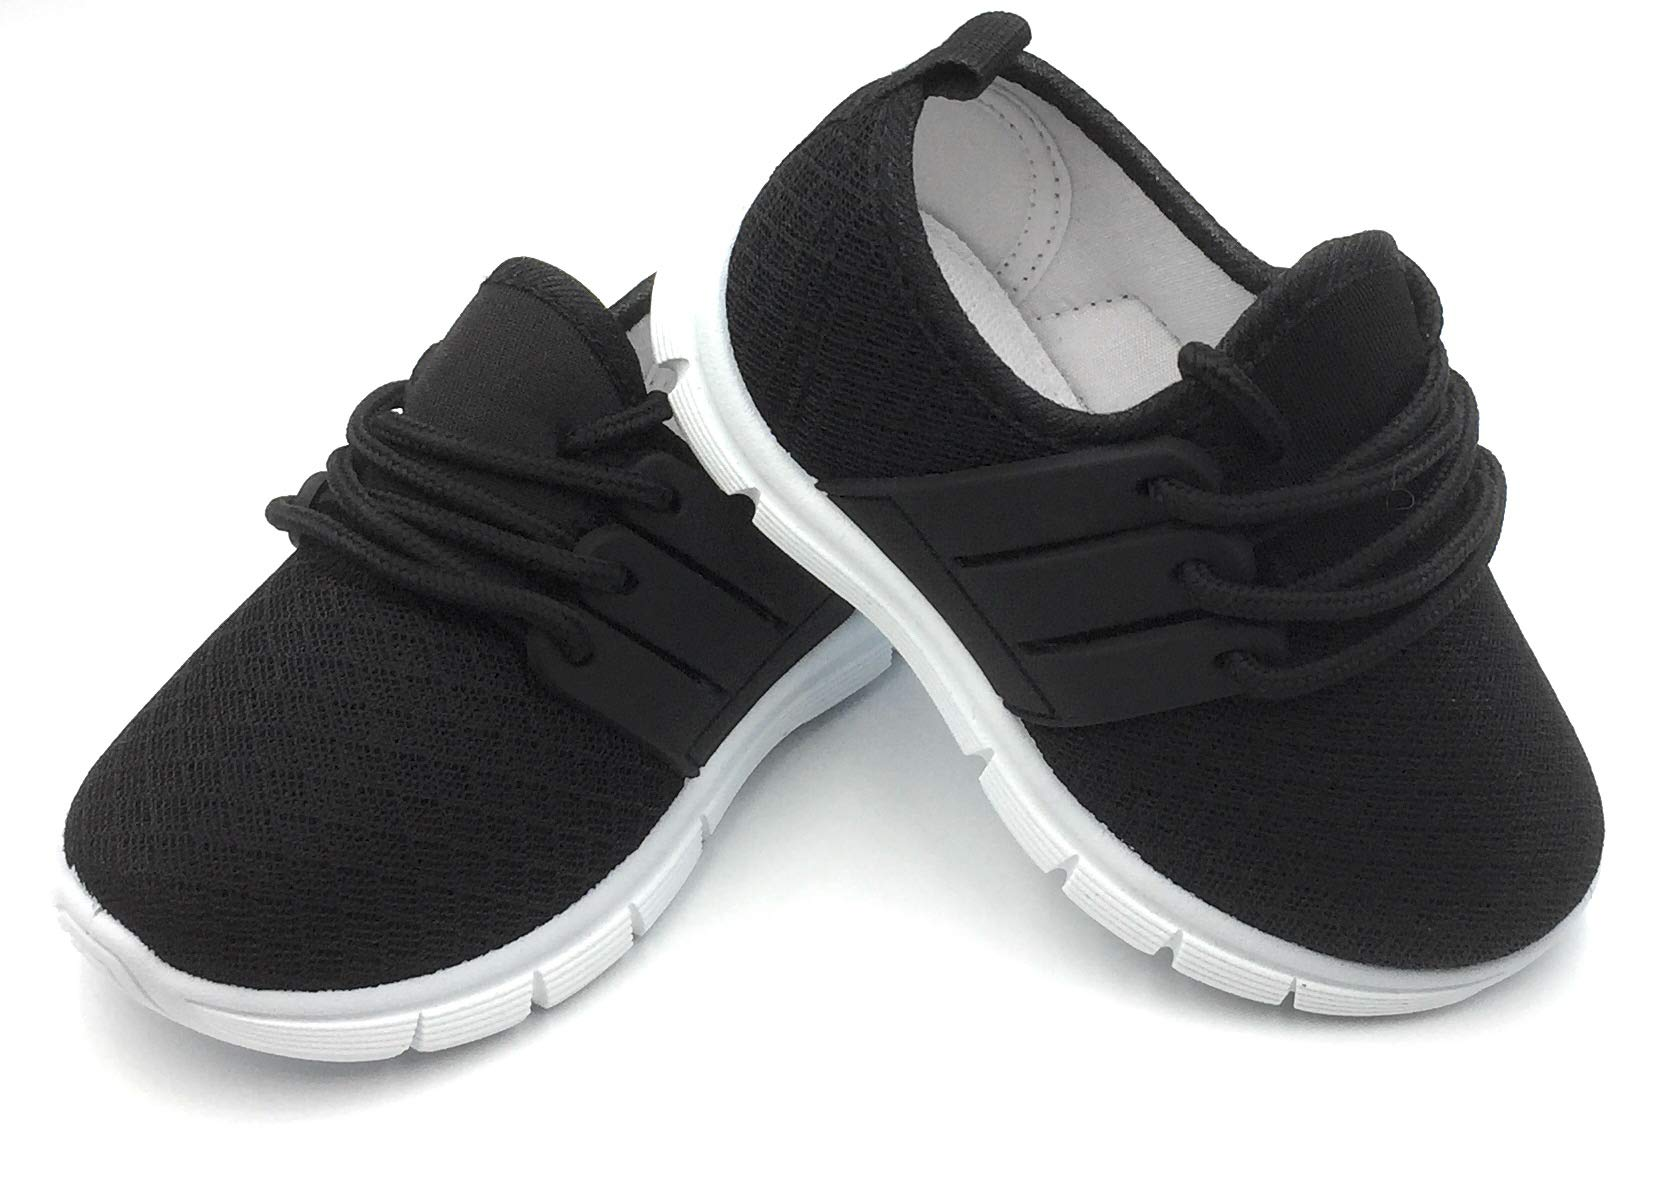 Bless Children Baby Toddlers Boy's Girl's Breathable Fashion Sneakers Walking Running Shoes,Black502.Size 5